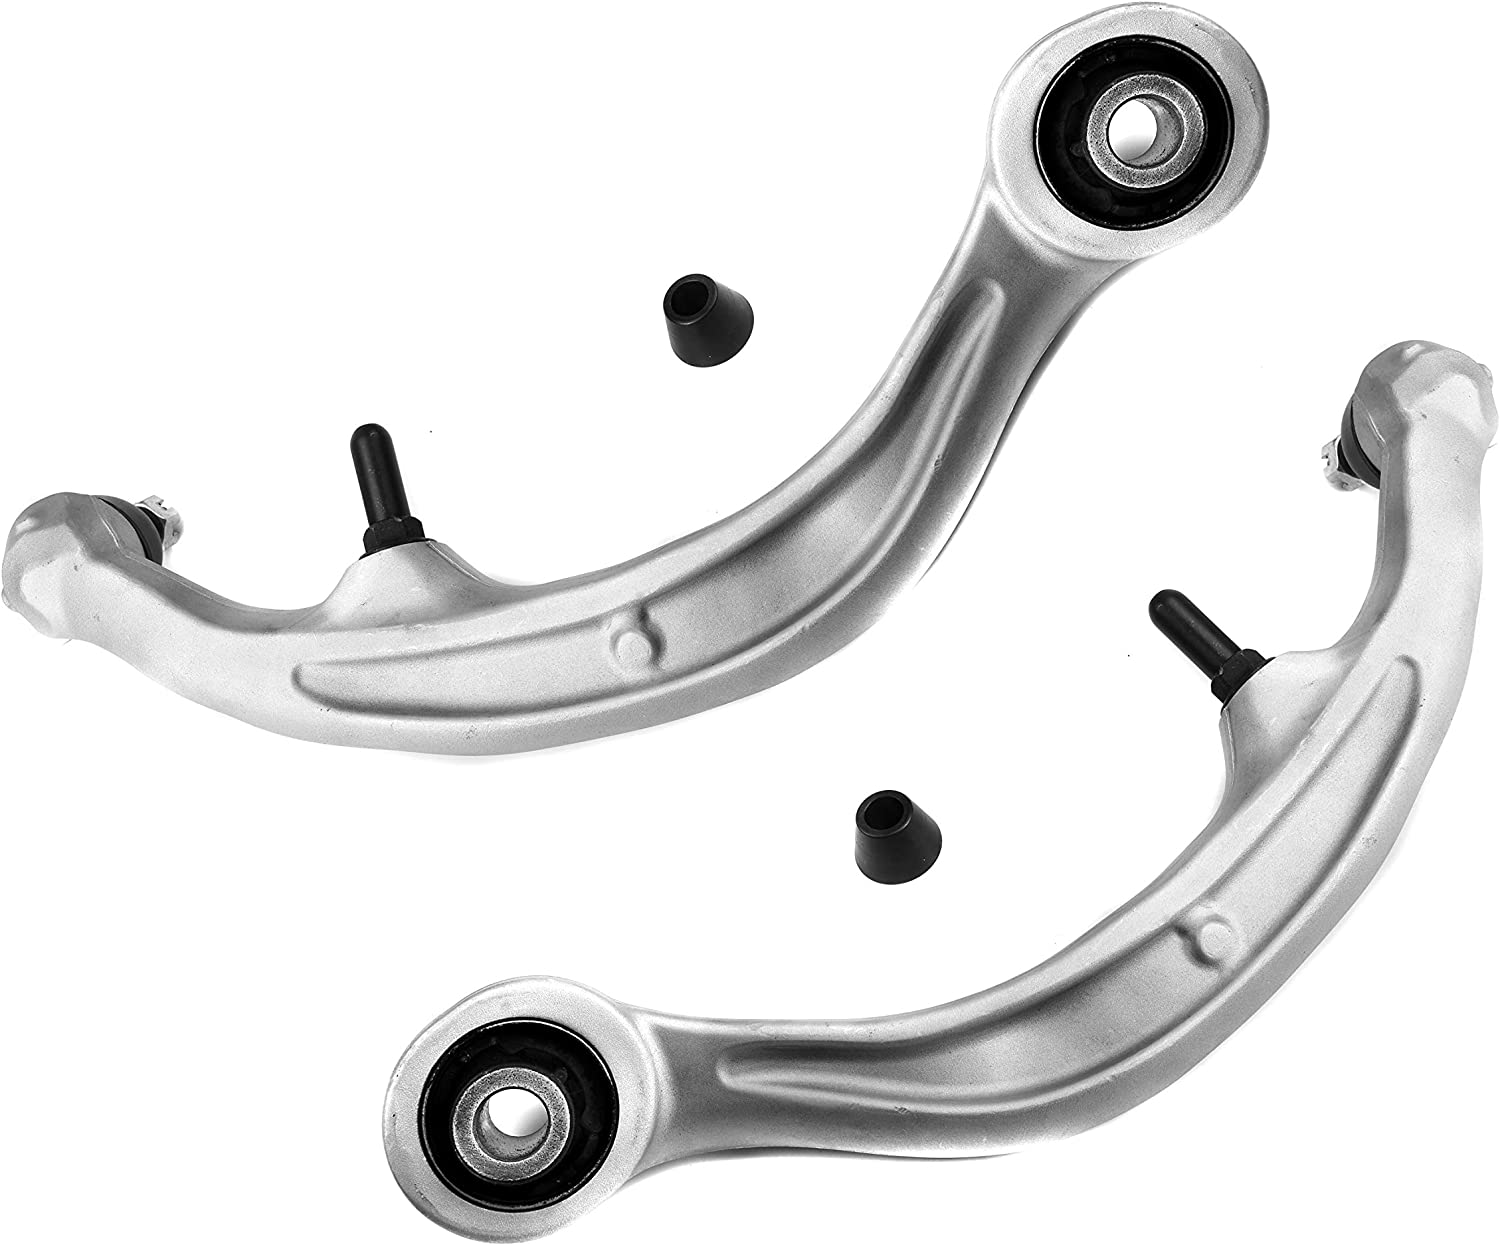 ADIGARAUTO K621340 K621341 2PCS Front Lower Rearward Control Arm and Ball Joint Assembly for Infiniti G35 Nissan 350Z Driver /& Passenger Side